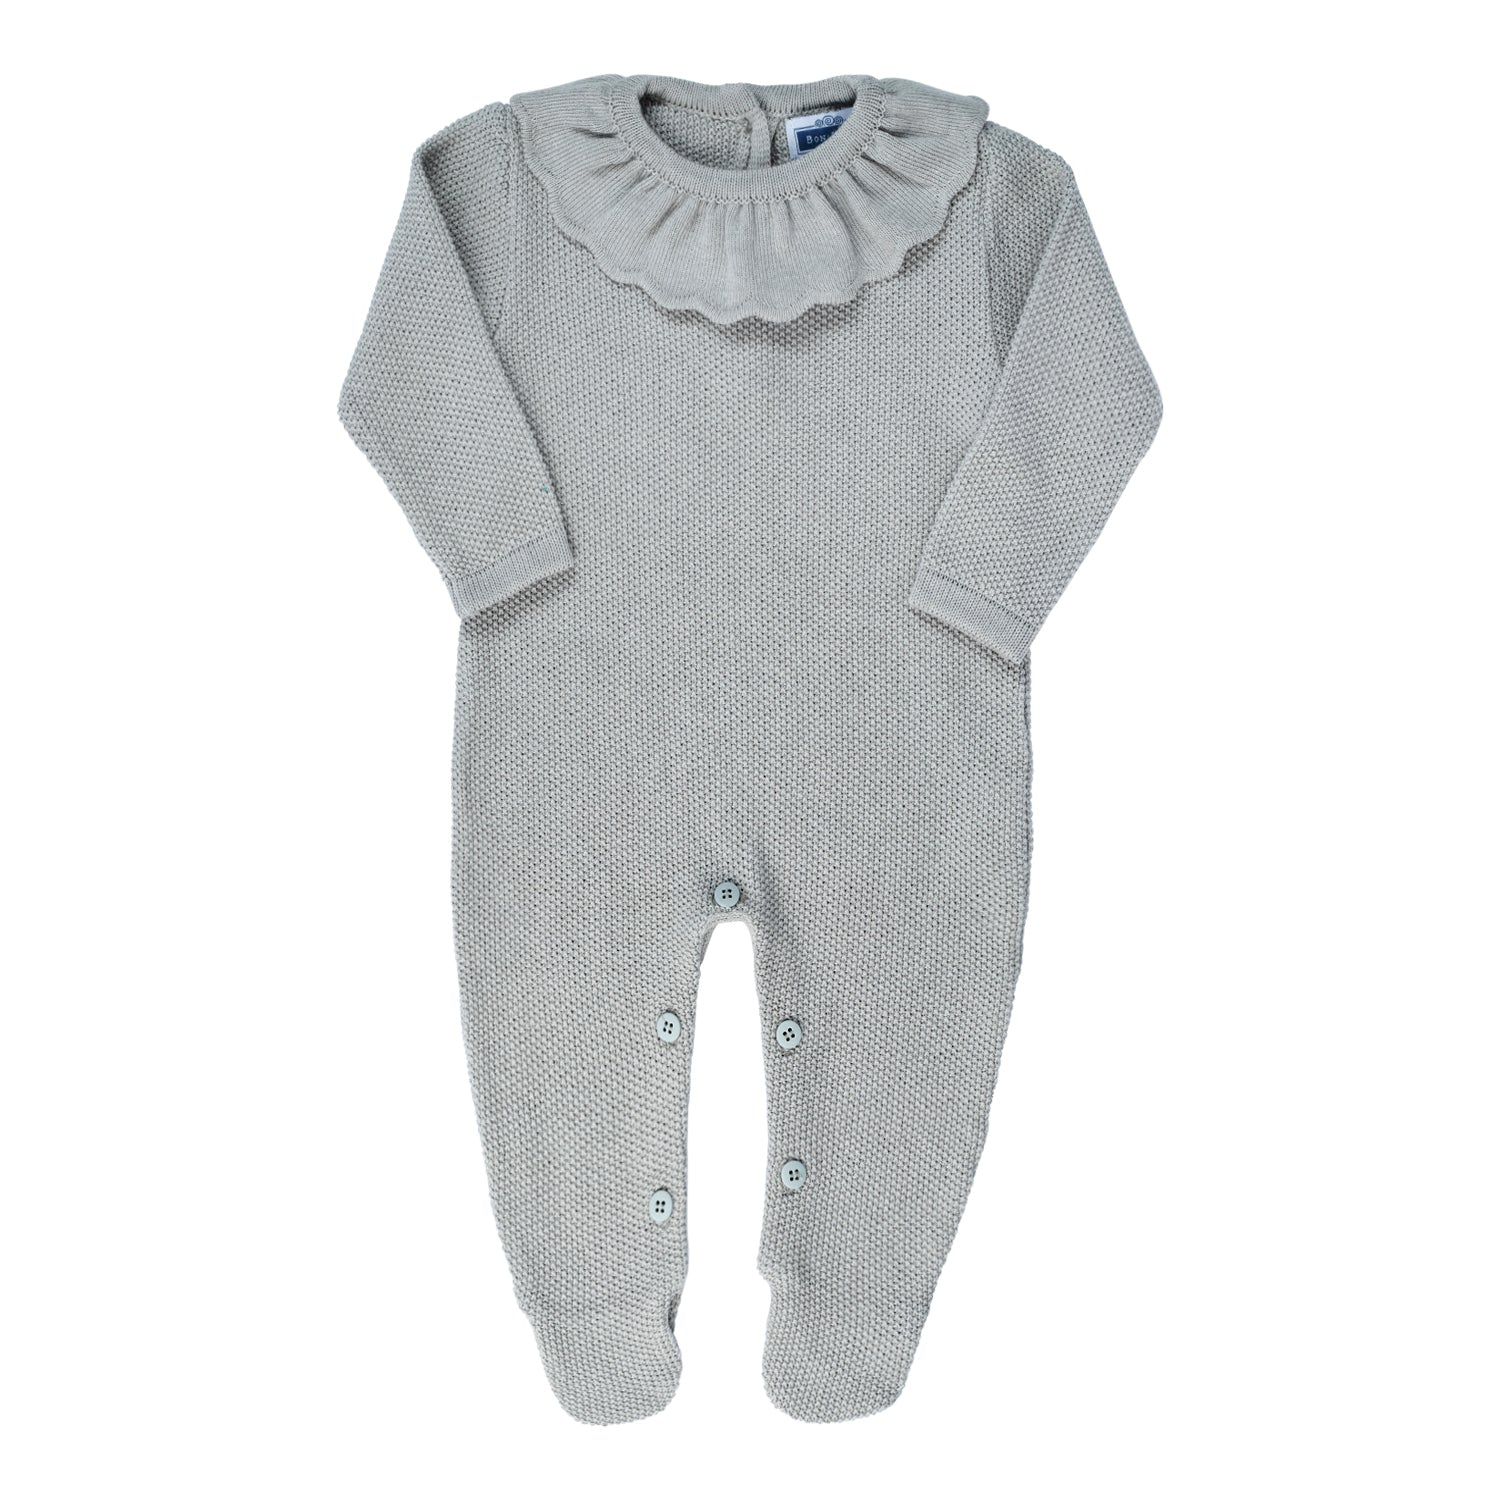 Etta One piece ~ Grey